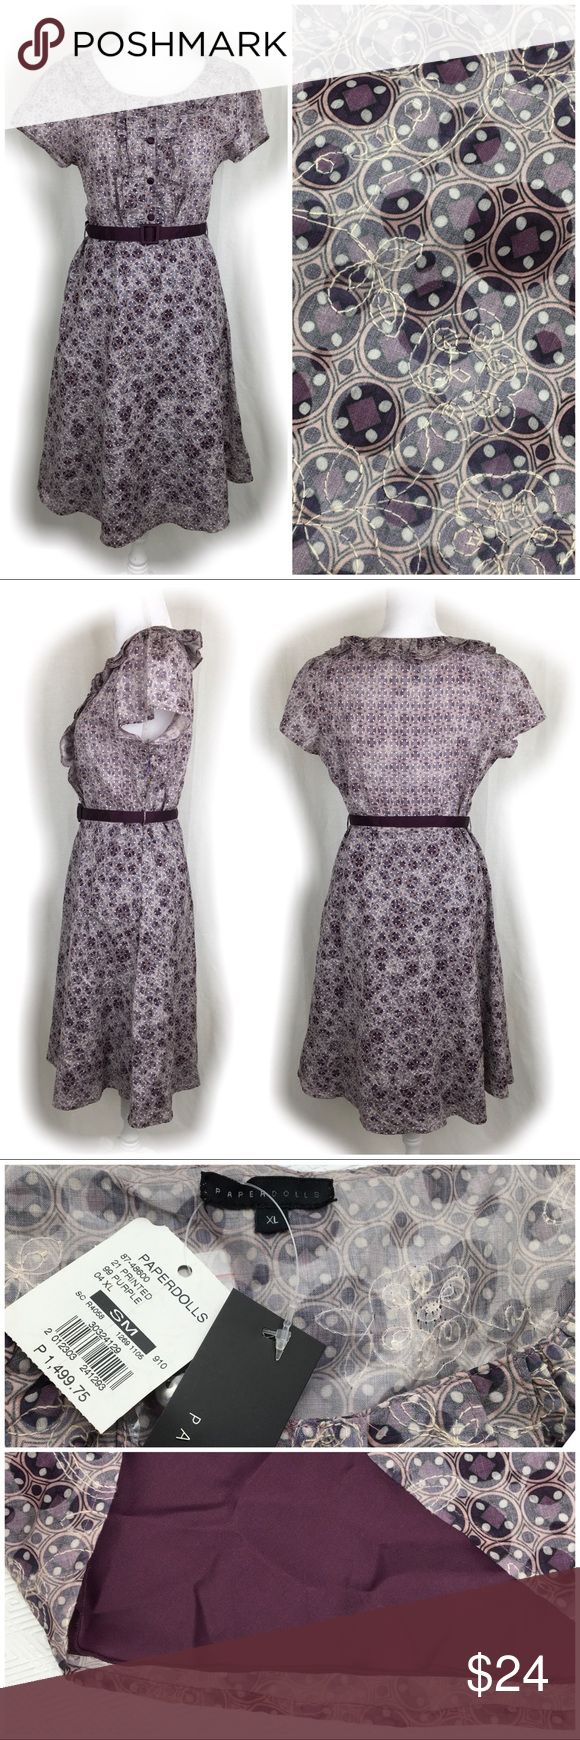 """NWT Paperdolls Purple Print Cotton Dress NWT Paperdolls Purple Print Cotton Dress.  Size XL.  Lightweight purple cotton print fabric with complementing floral embroidery.  Removable purple satin belt.  Purple satin button-down front bodice.  Ruffle neckline.  Cap sleeves.  Lined skirt.  Side zipper closure.  100% cotton with polyester lining.  Hand or machine wash cold, tumble dry low.  Length shoulder to hem 40"""".  Pit to pit: 20"""".  Waist: 18"""" across.  Hips: 22"""" across.  Bottom of dress: 34""""…"""